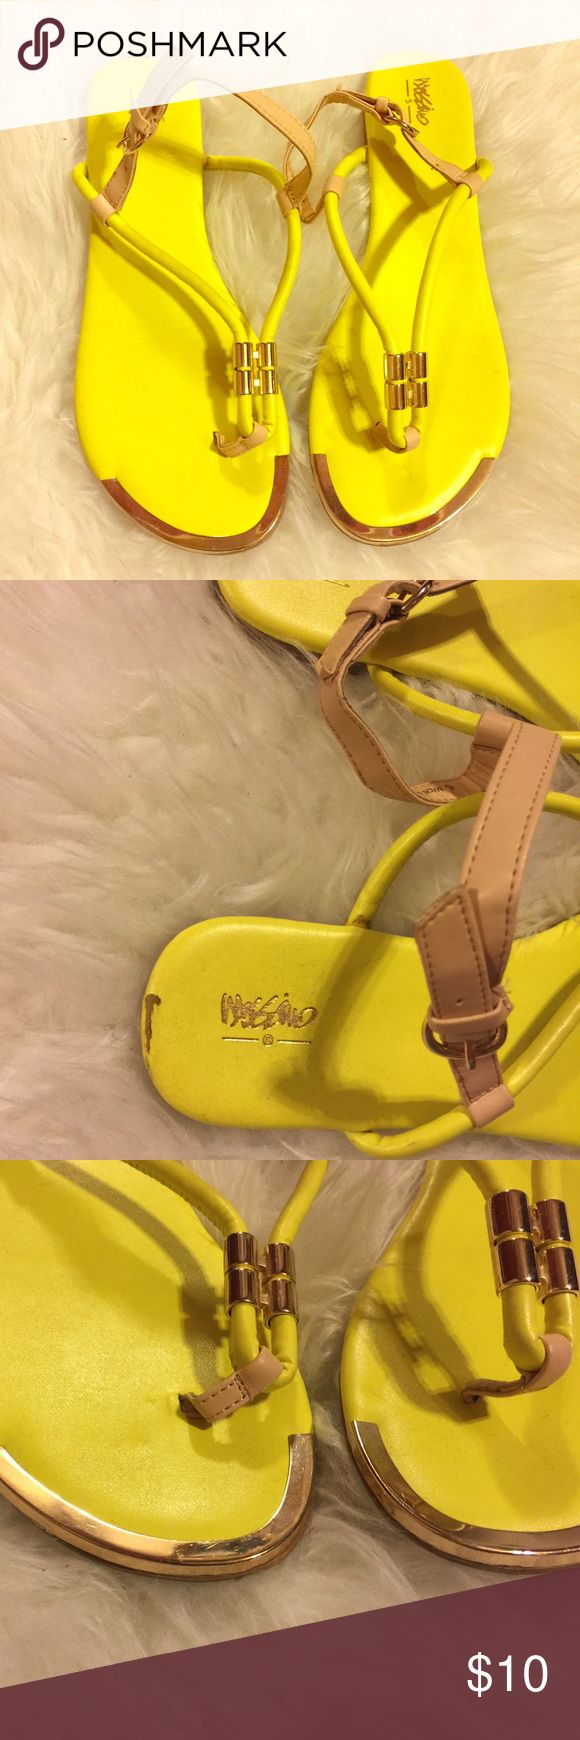 Neon sandals Used once. Still great the only flaws it has is the scratches and the ripped part on the back of the shoe. No trades. Bundle and save! 10 % off bundles! Shoes Sandals